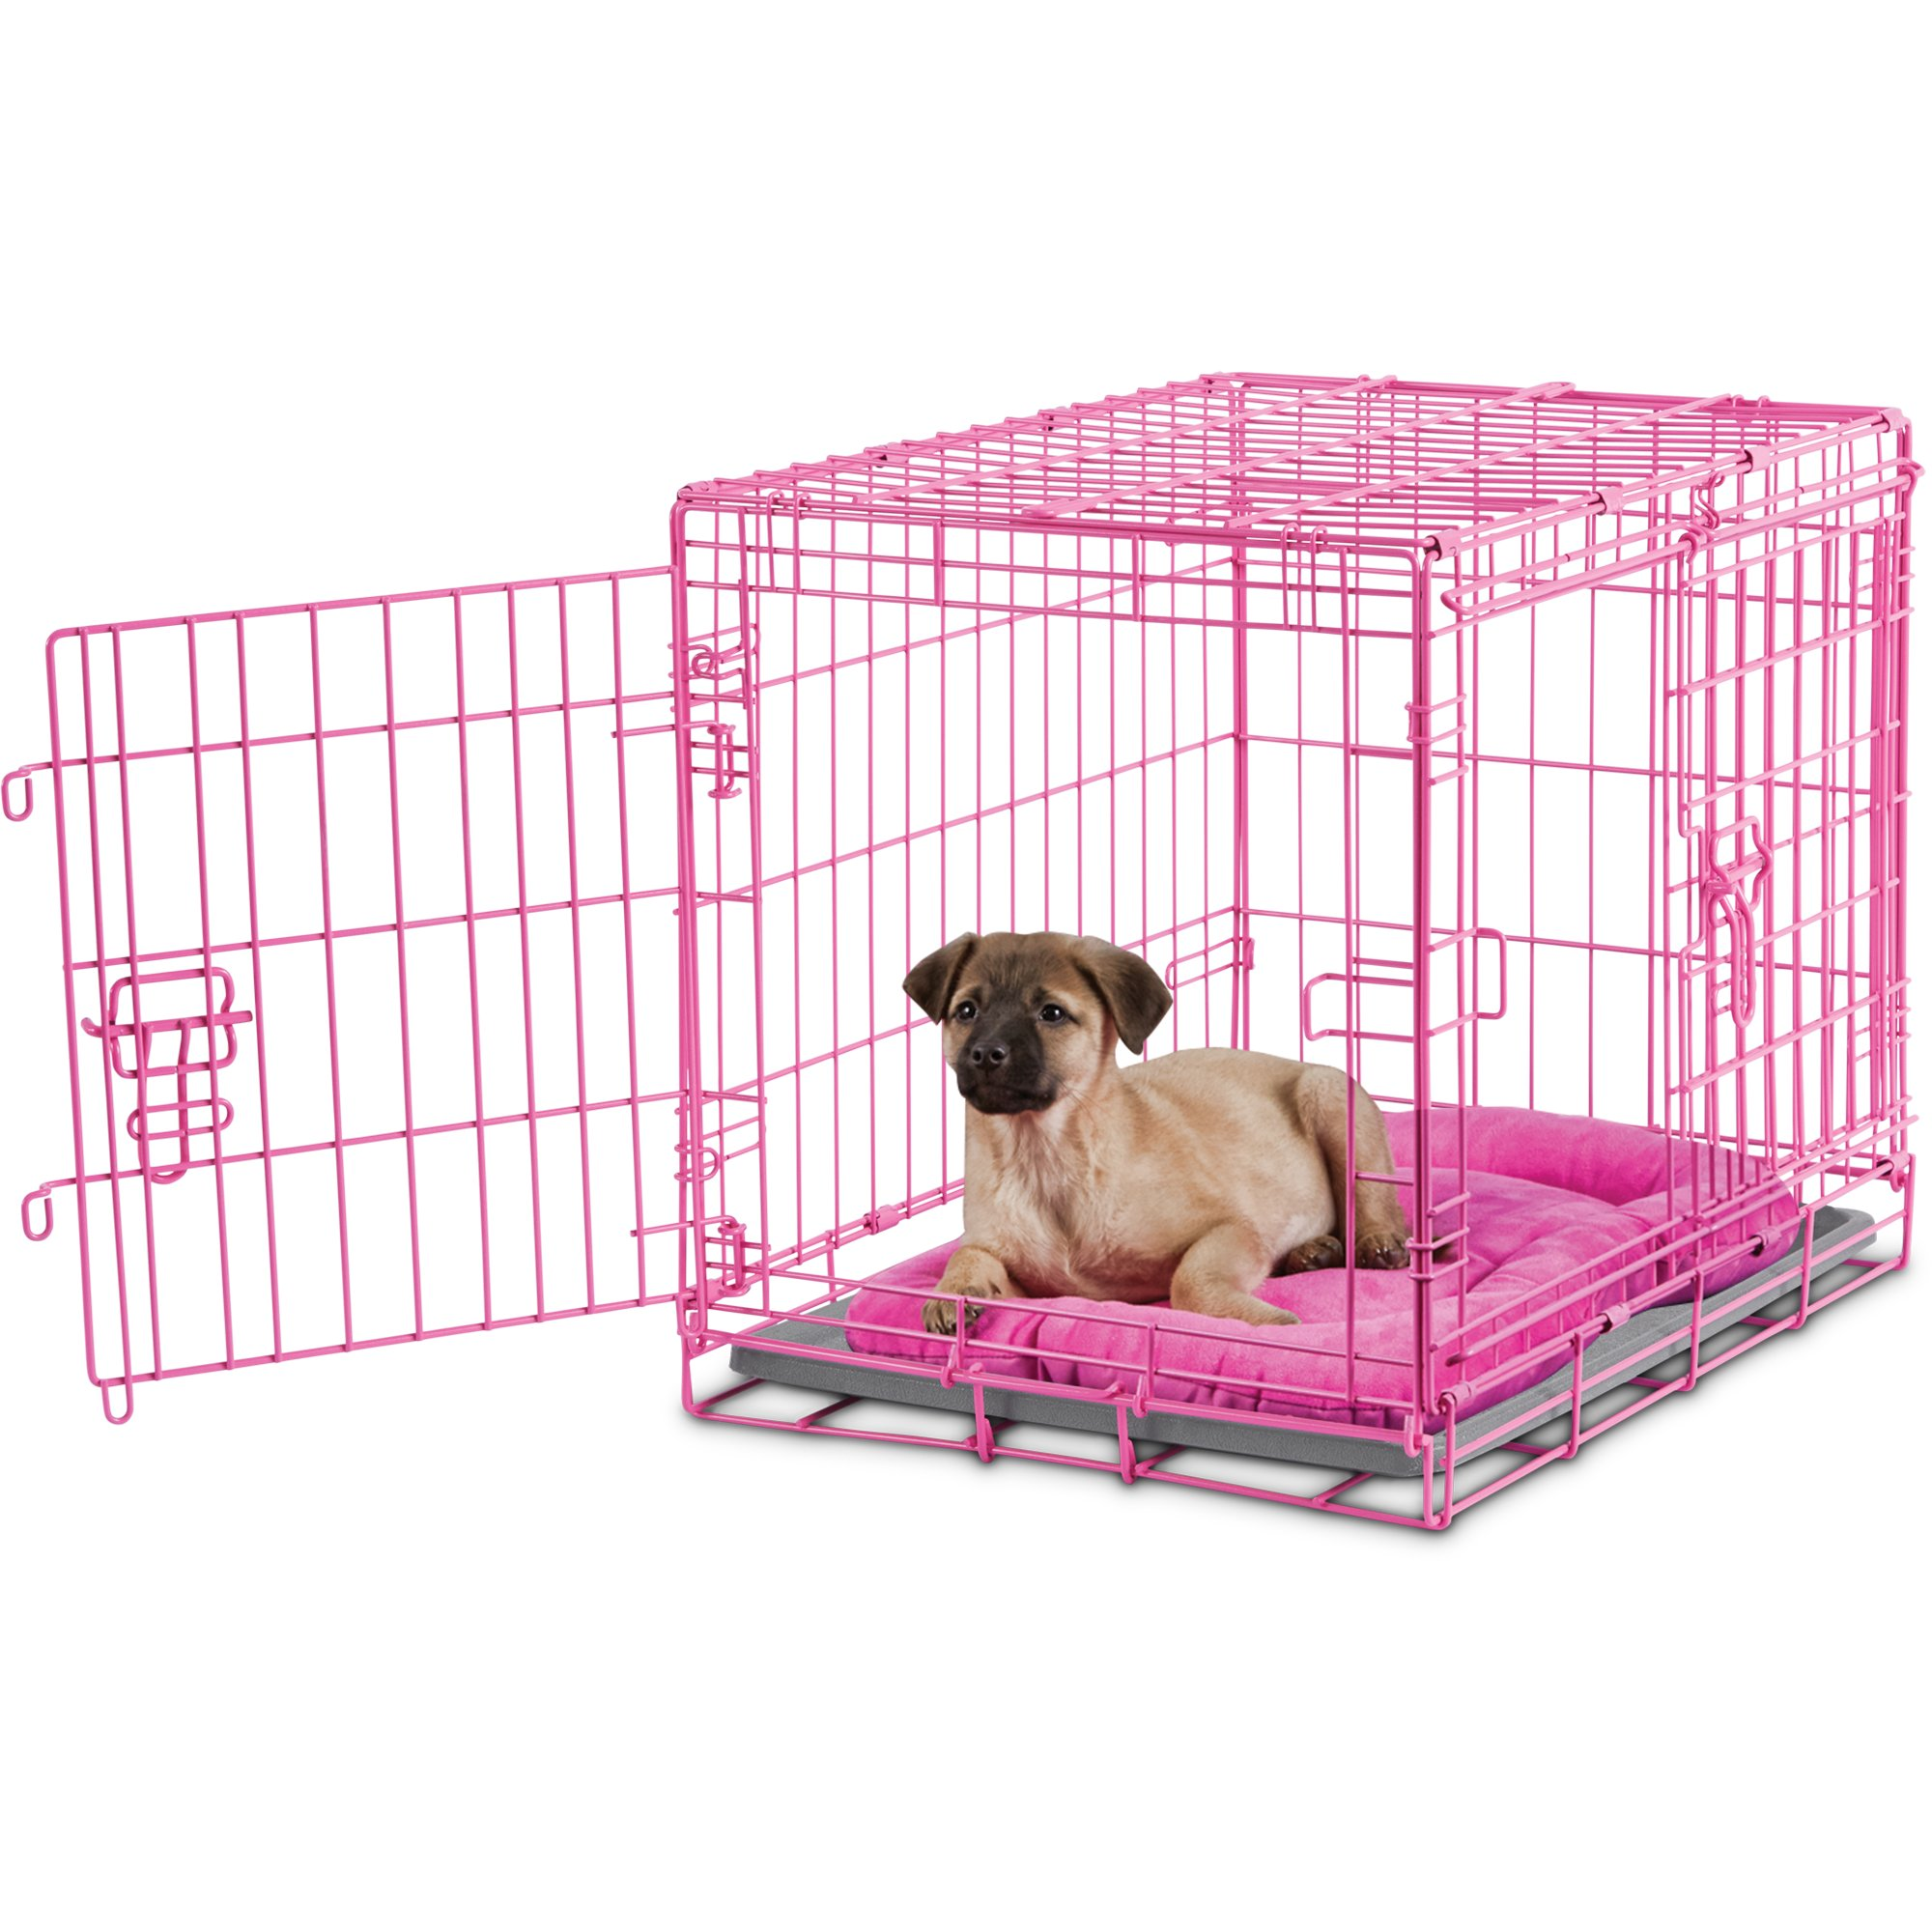 Training Crate and Mat